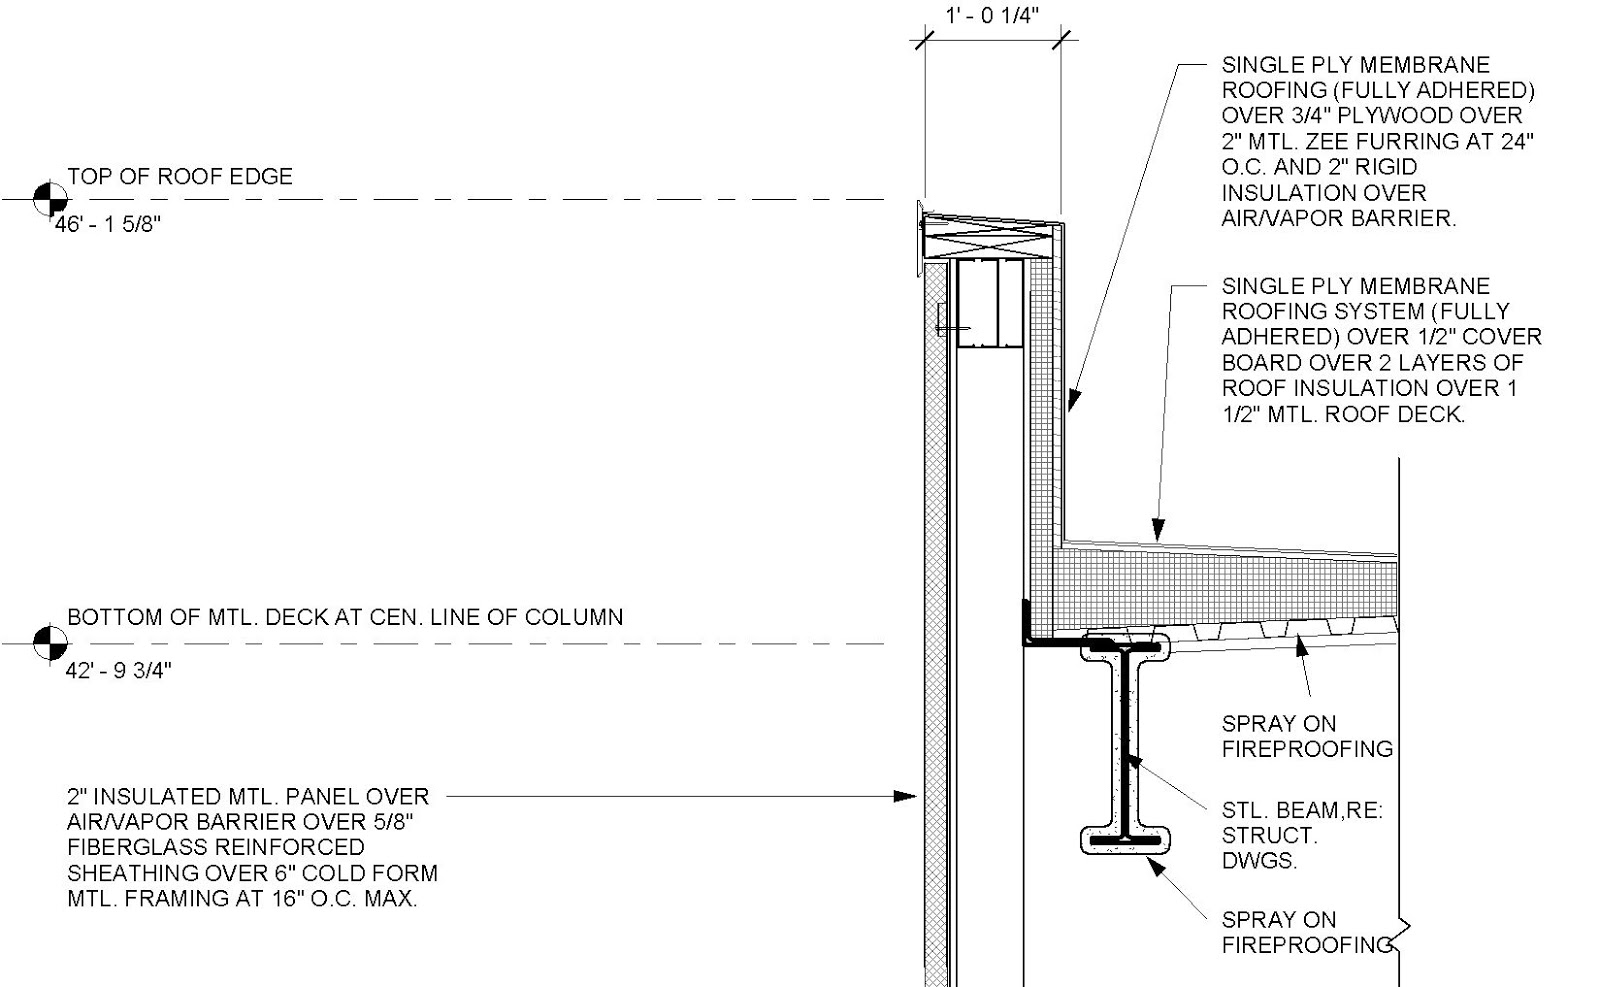 Revit Tutorial - Constant Slope Rigging Family (Rigid Insulation